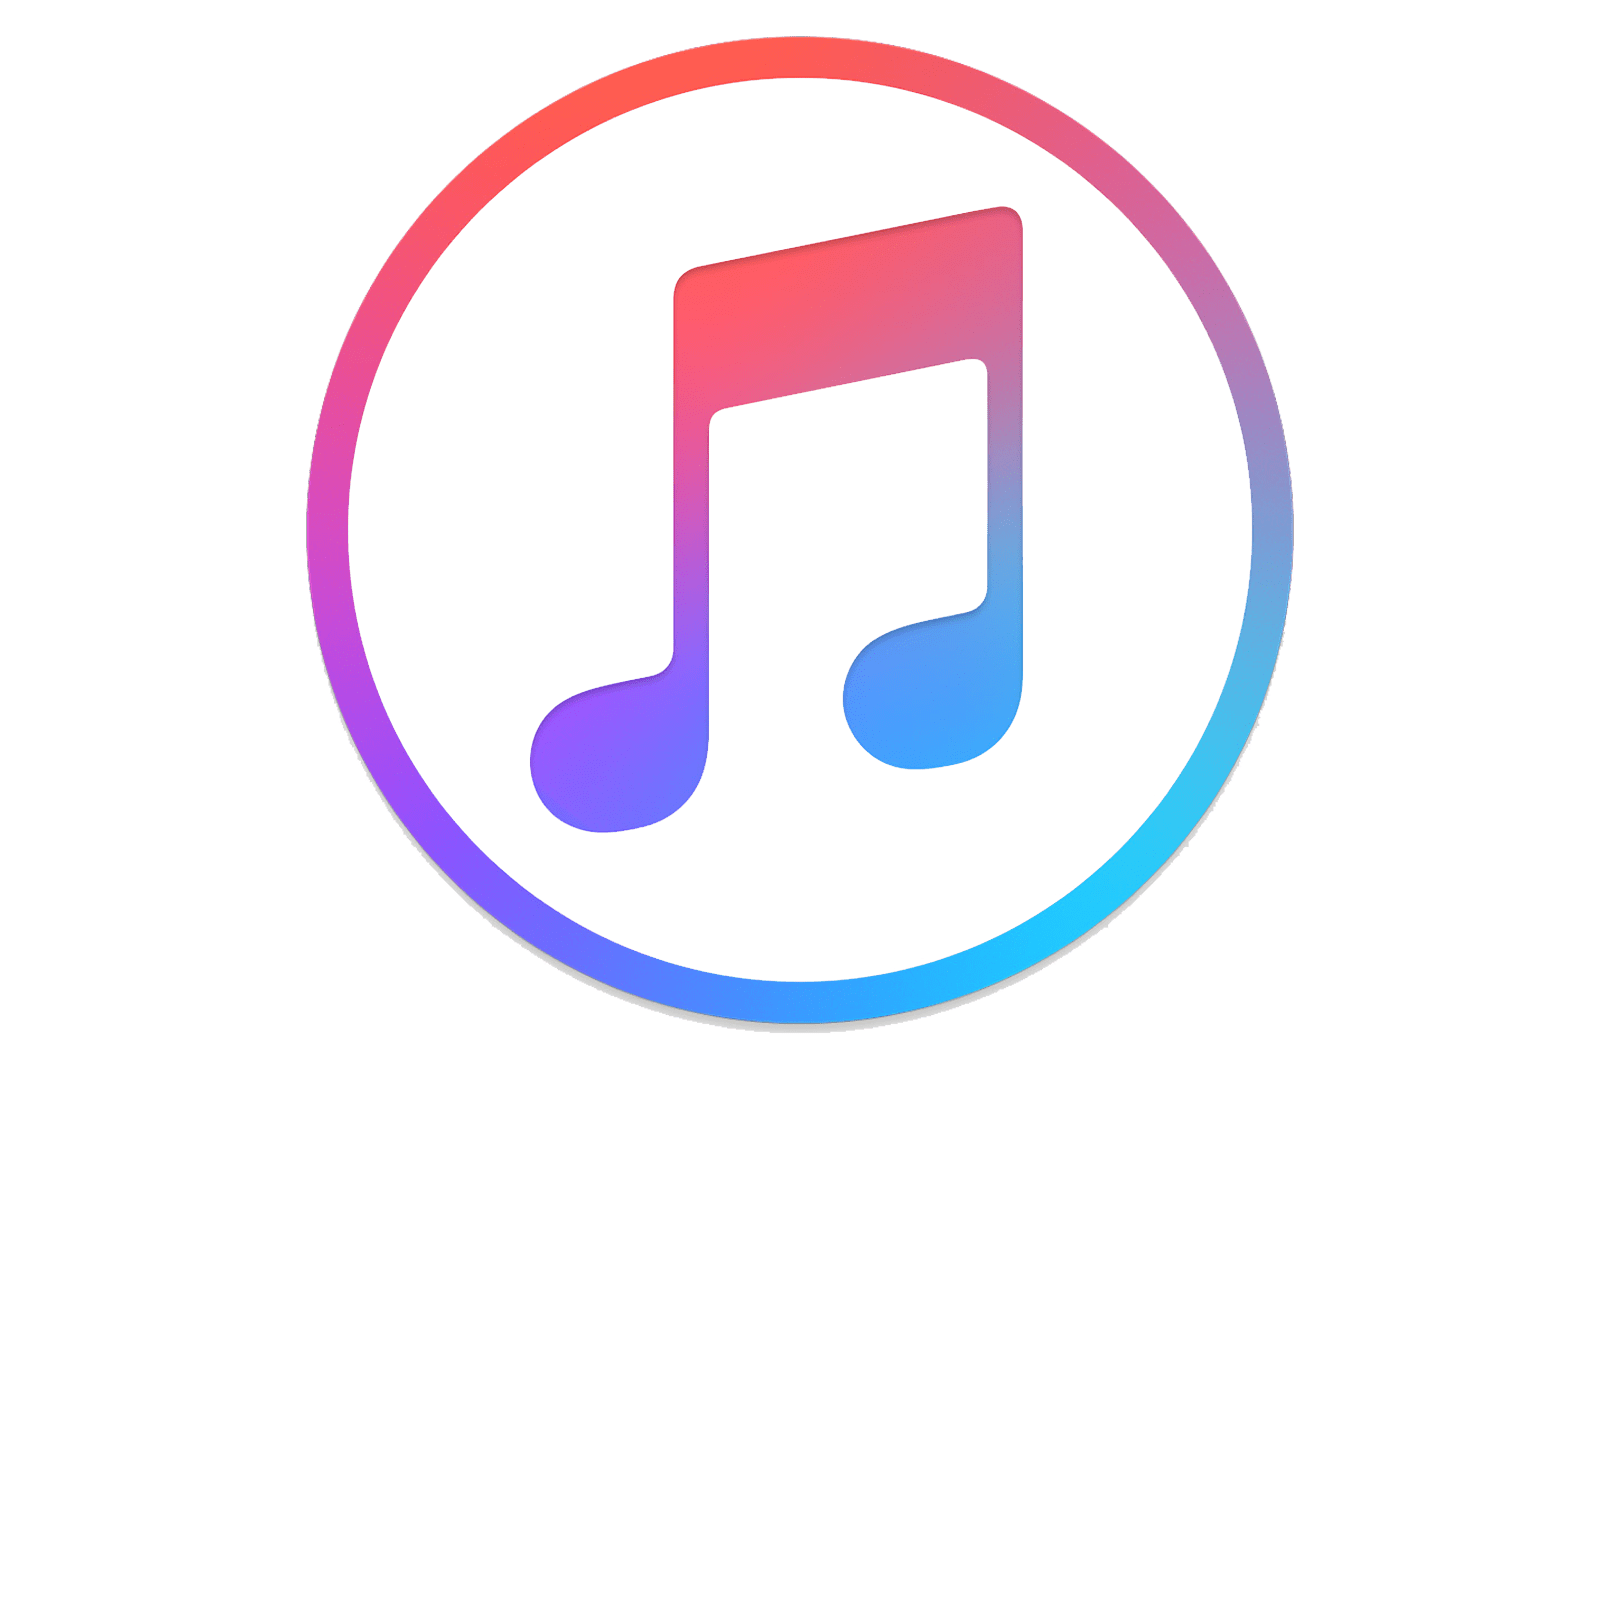 Live Animated Wallpapers For Windows 7 Apple Music Android Central